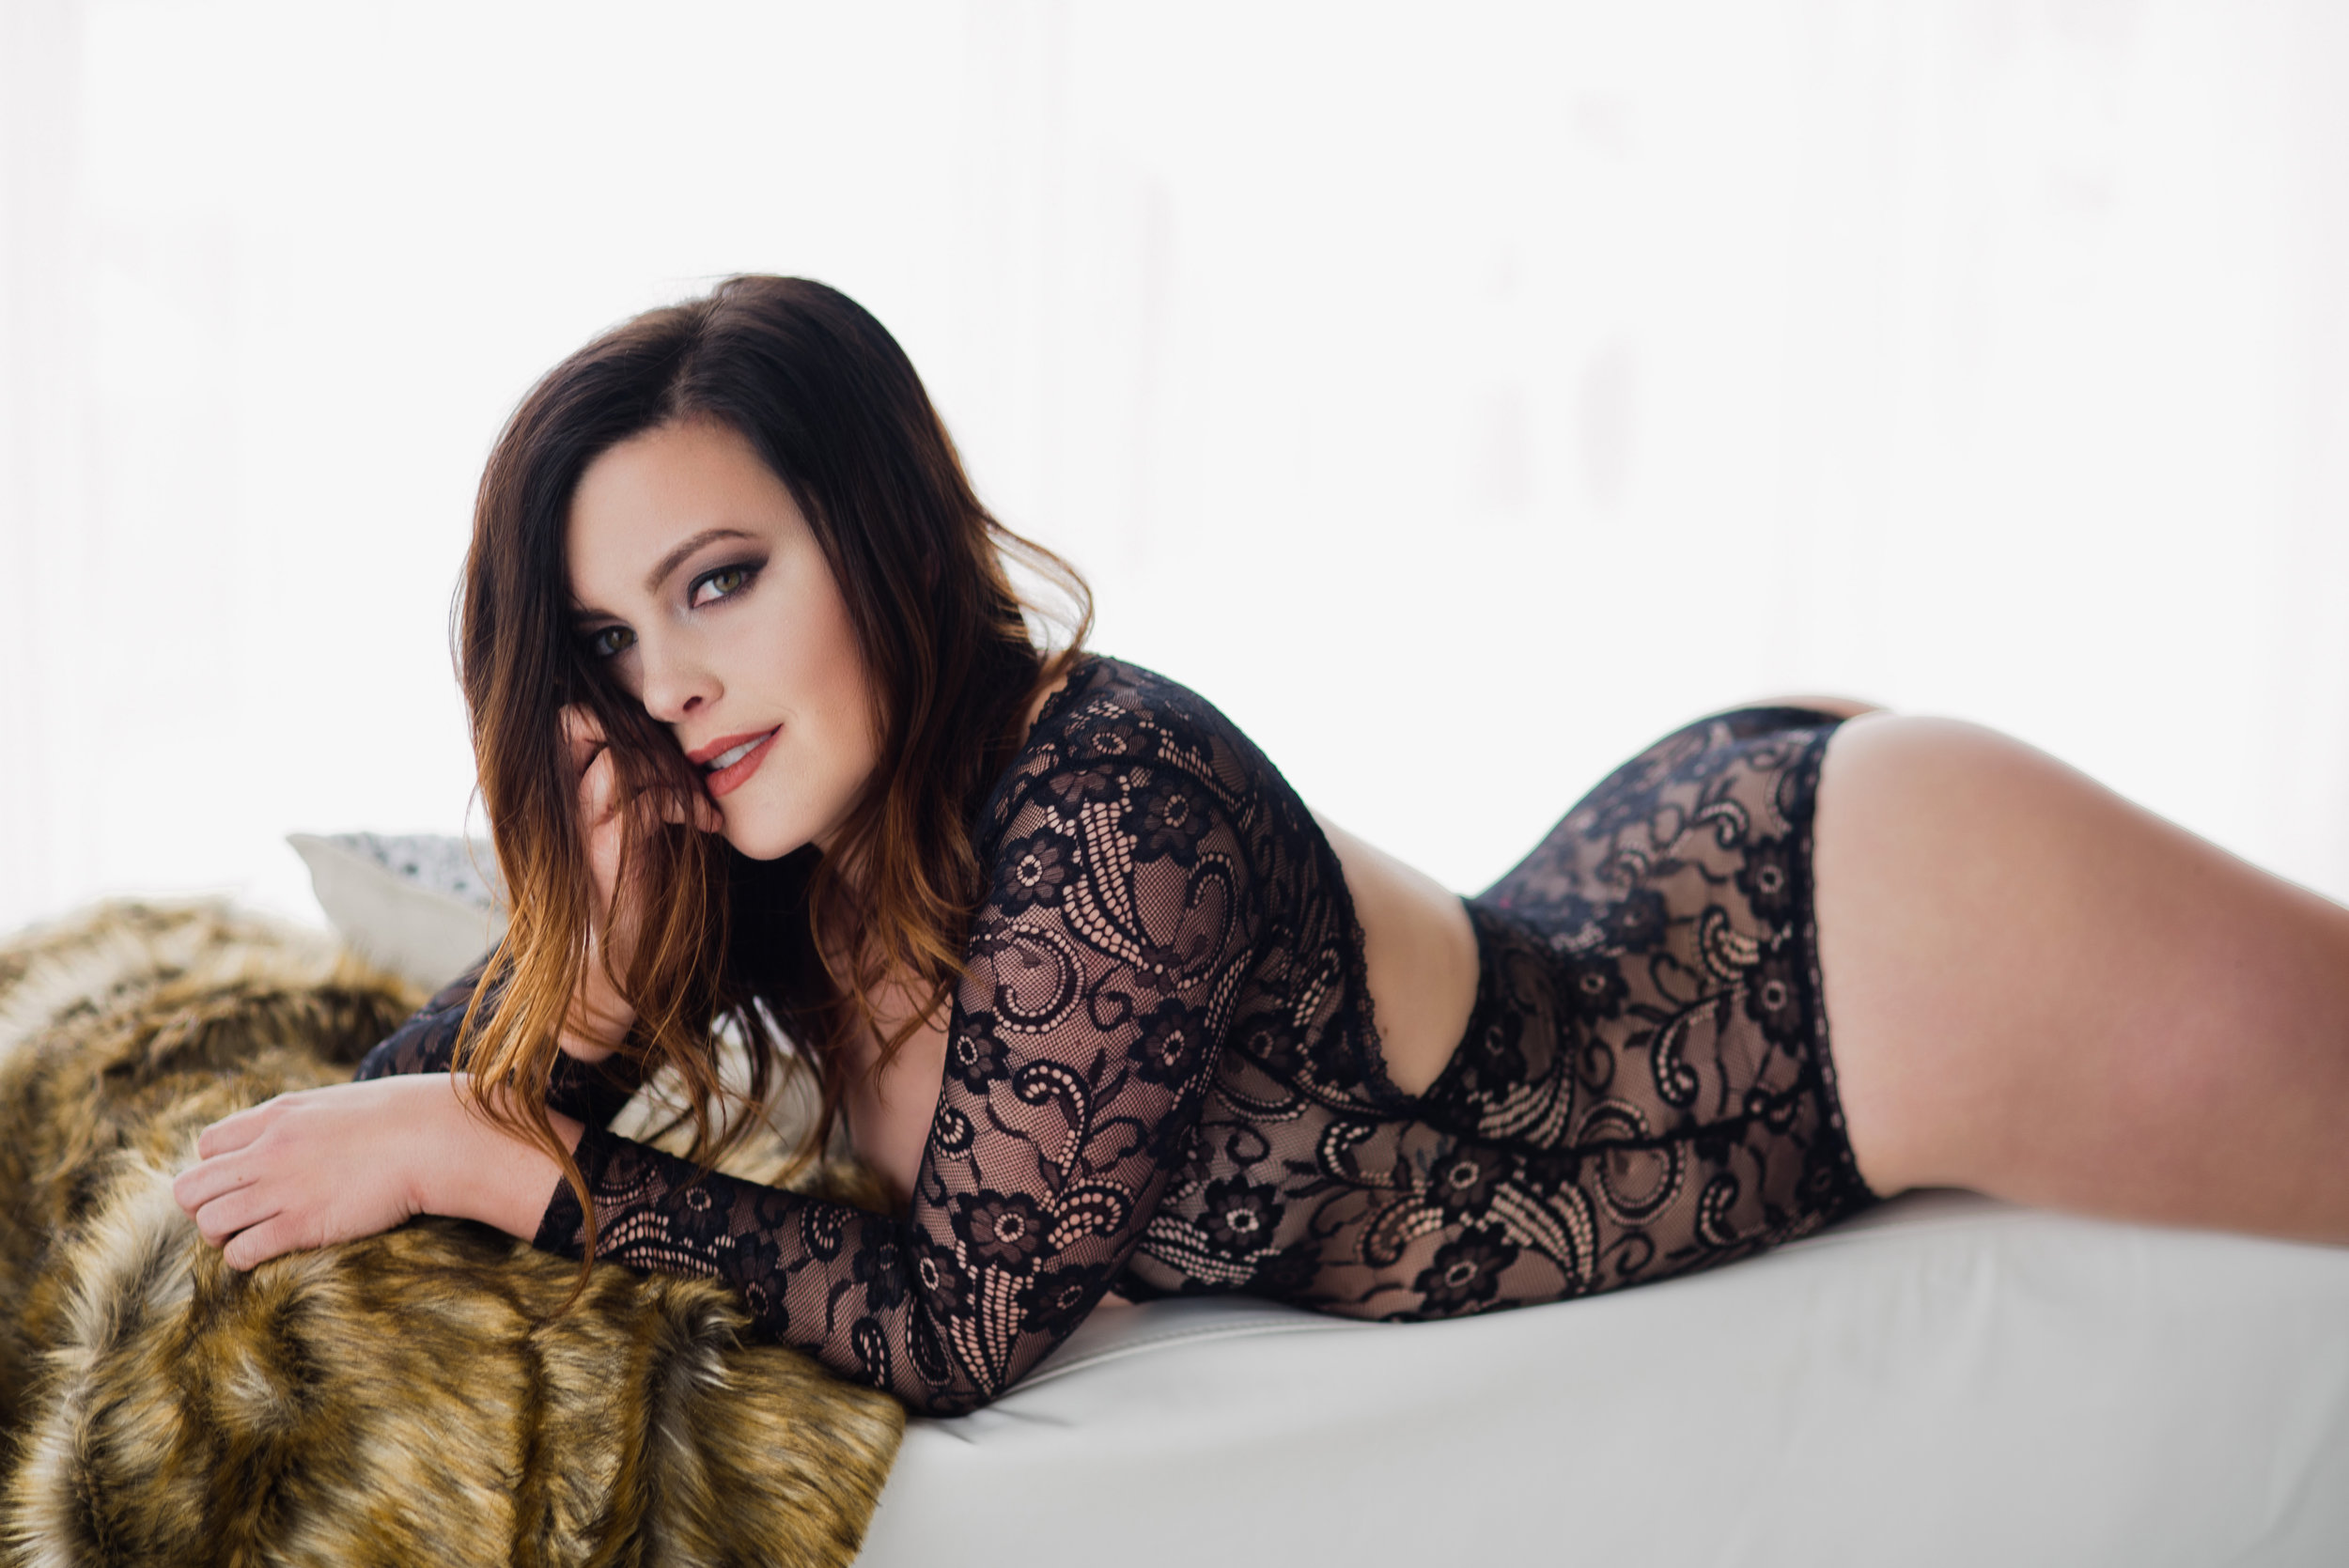 006Amy Cloud Photography Salt Lake City Boudoir Photographer .jpg